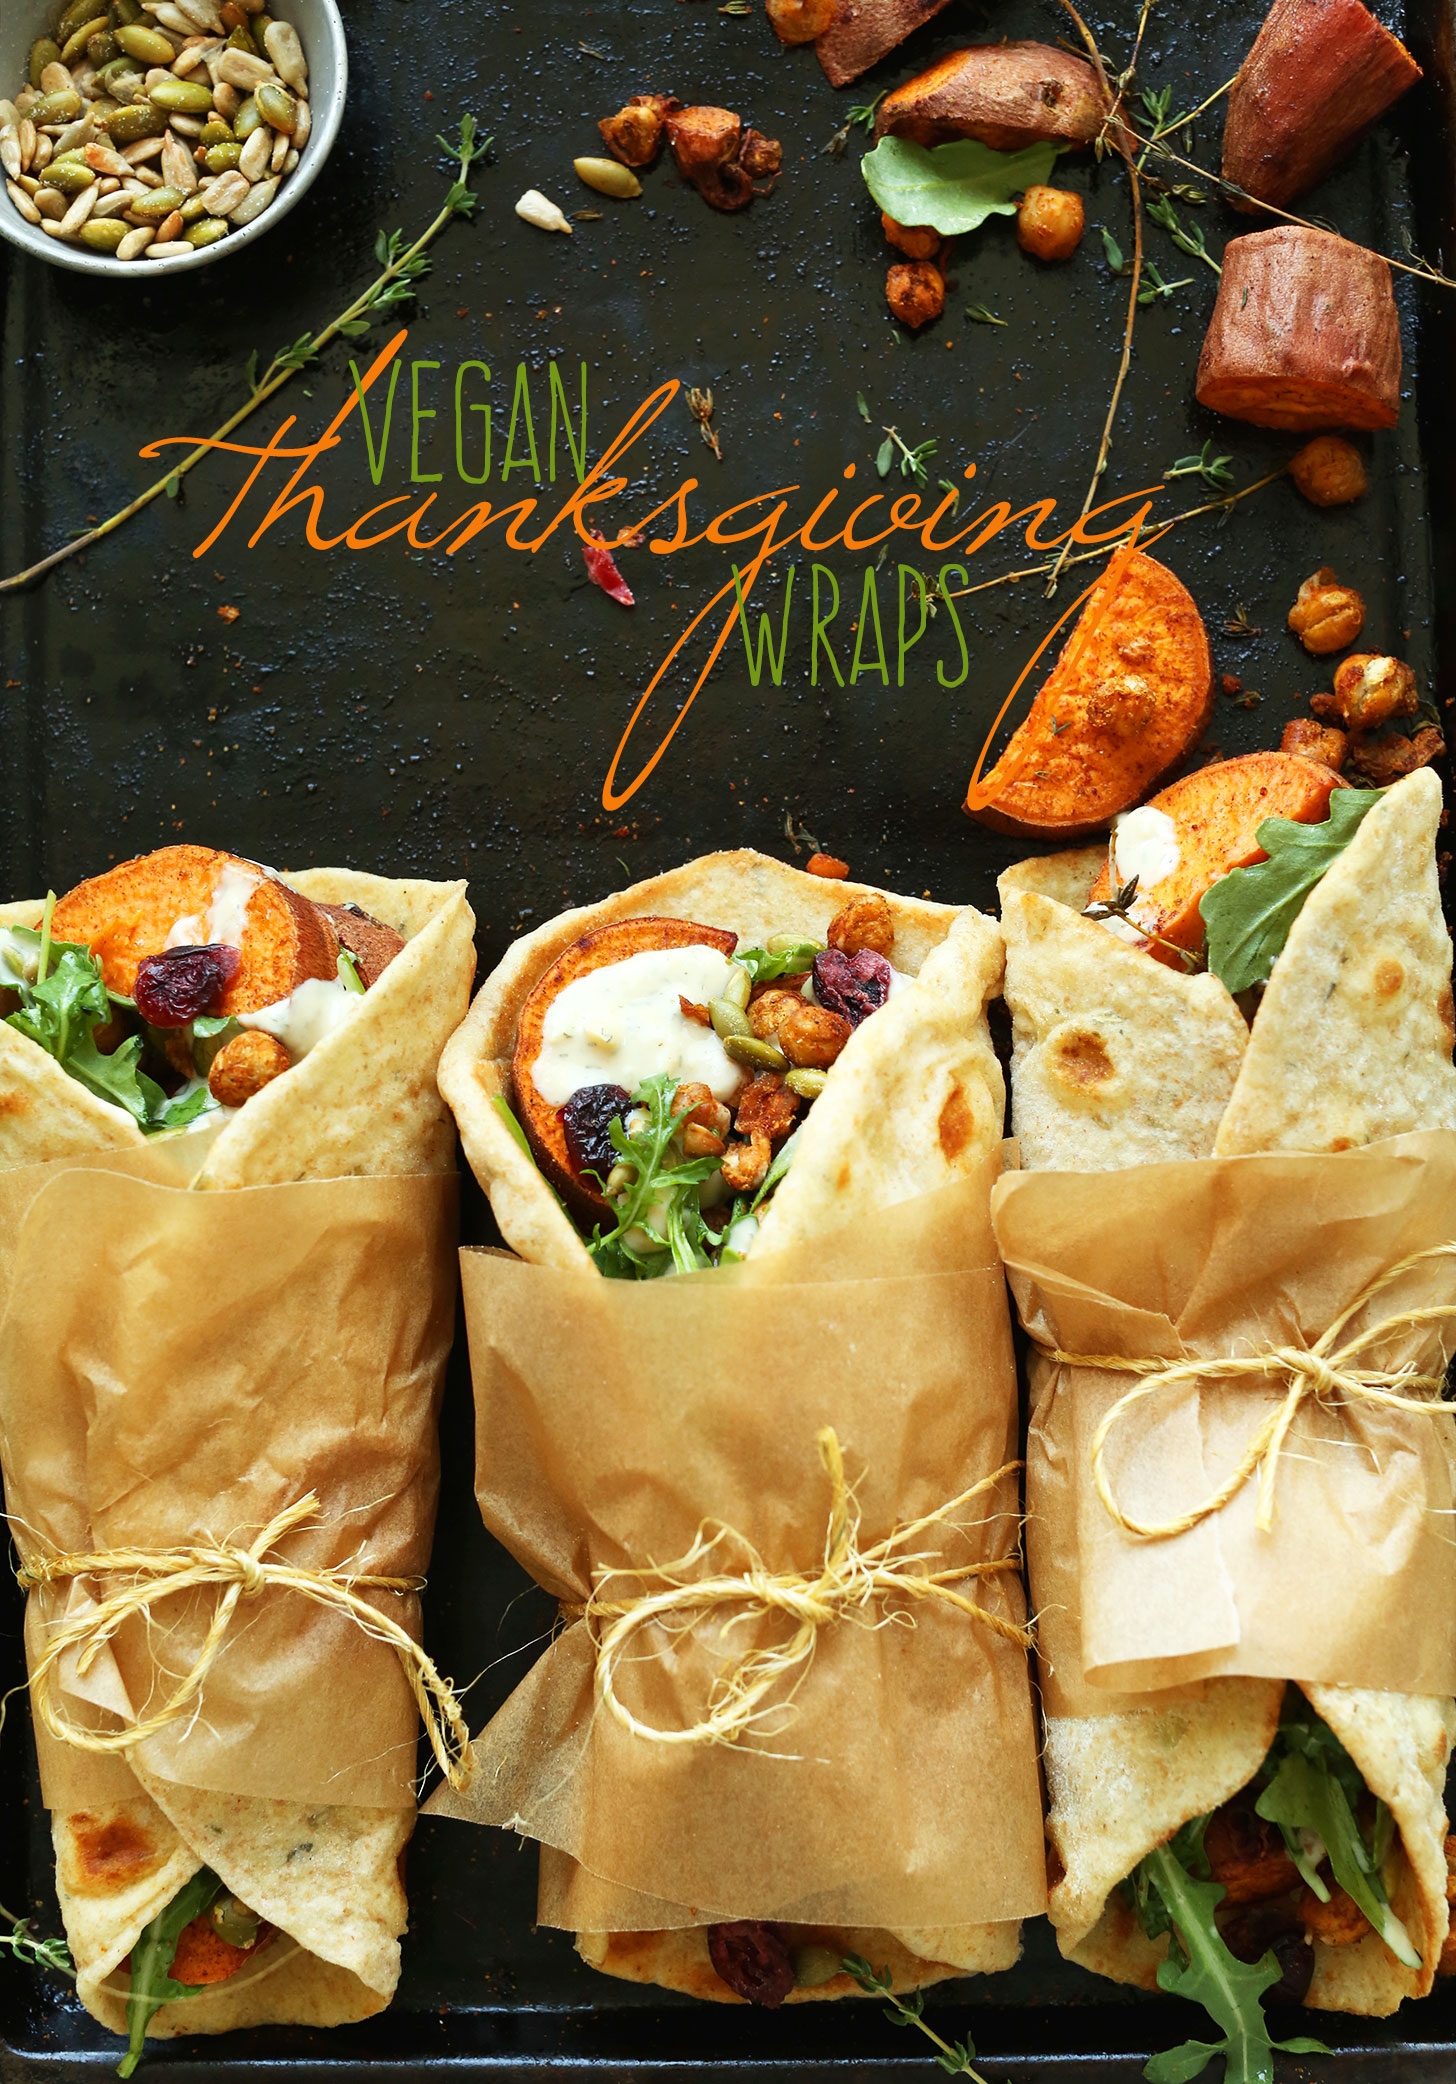 Baking sheet with vegan Thanksgiving Wraps filled with fall goodies